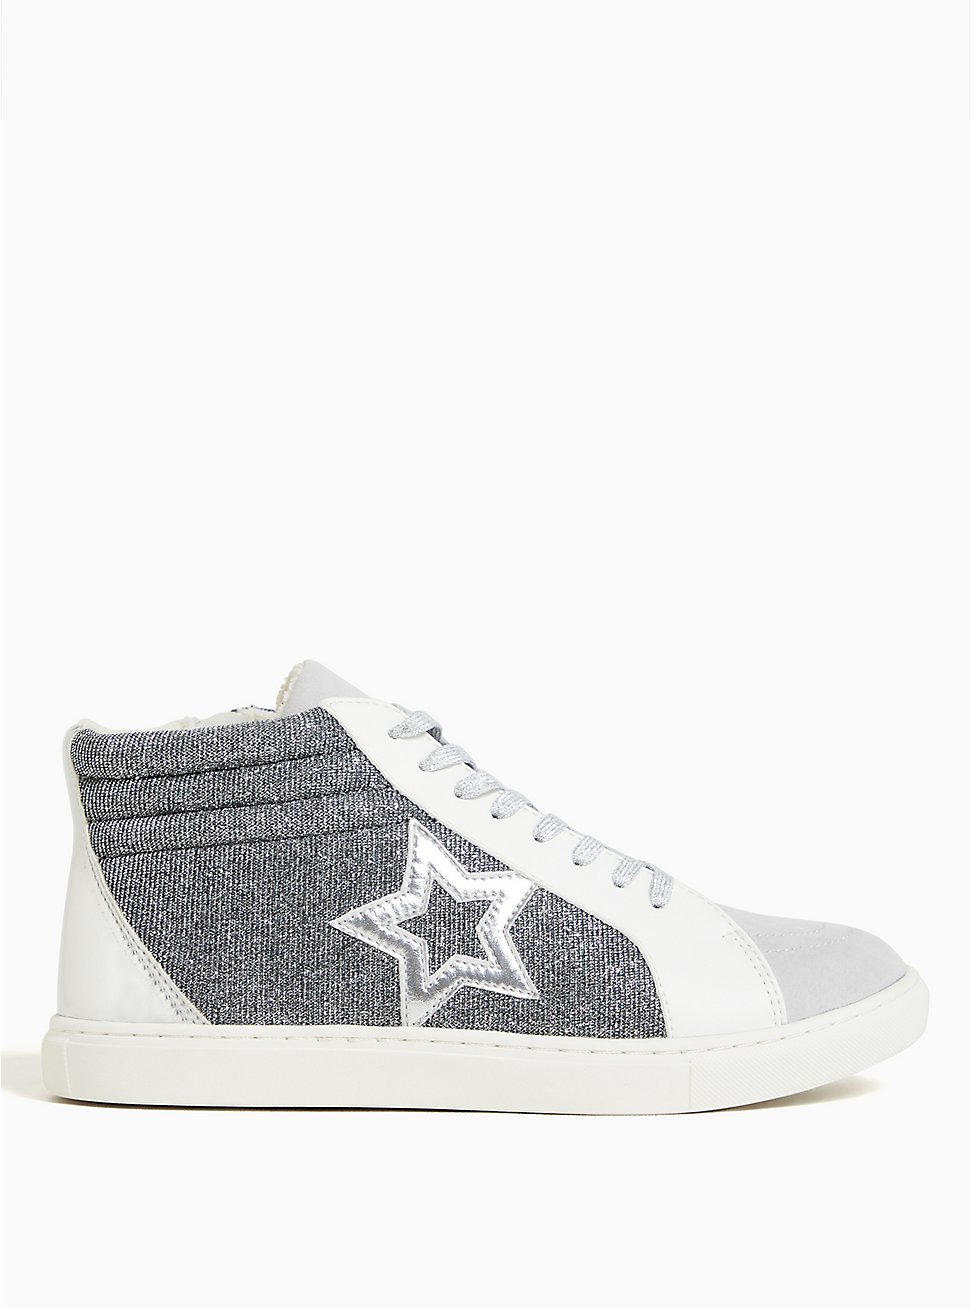 White Faux Leather & Silver Mid-Top Sneaker (WW), WHITE, hi-res